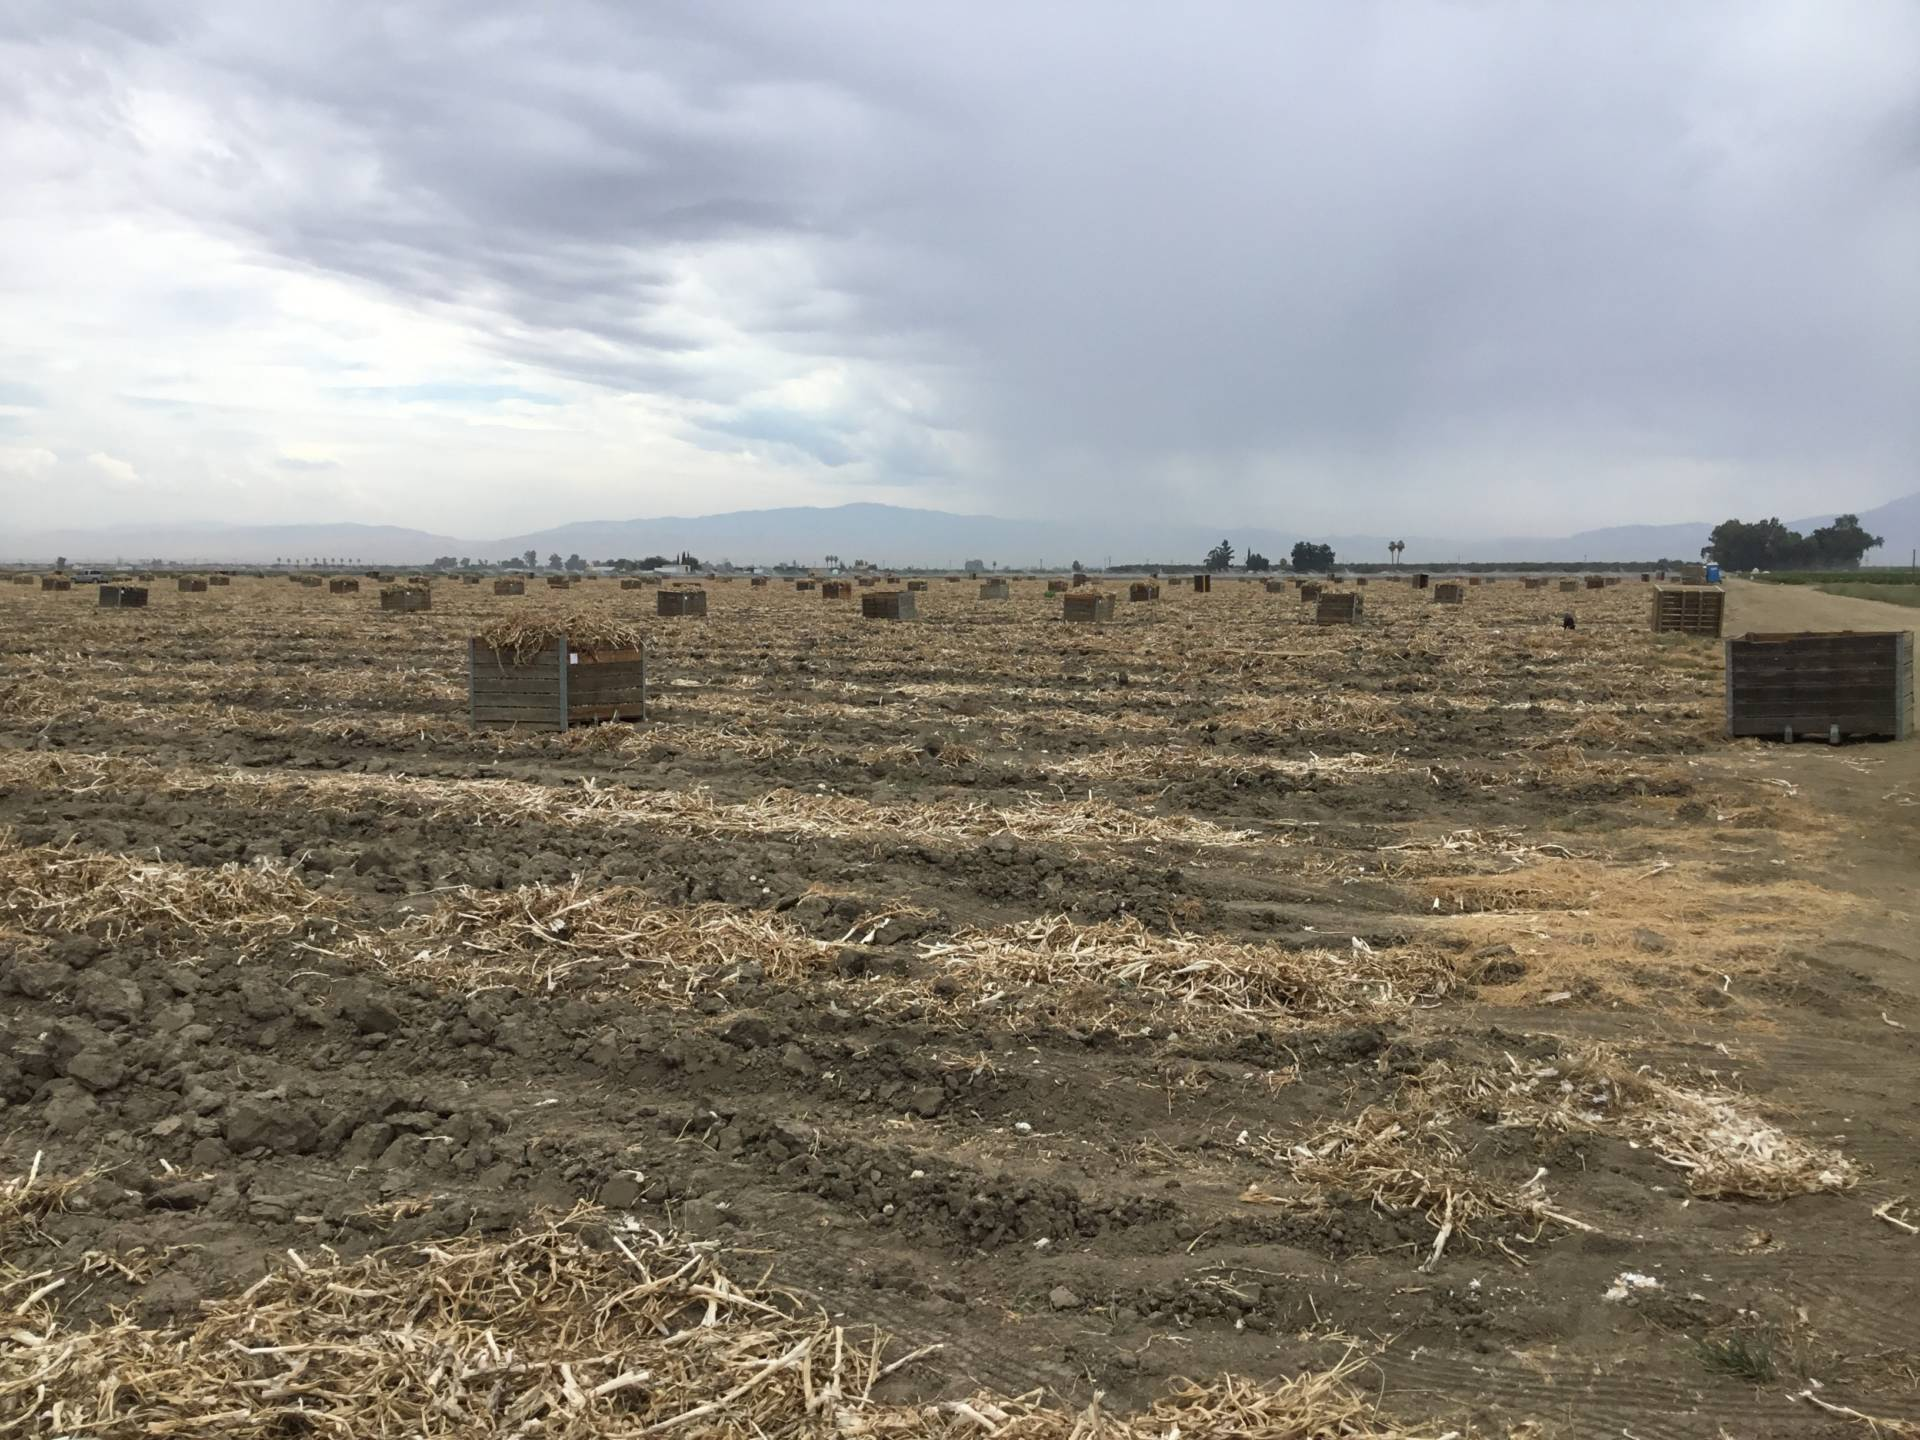 A garlic field where 92 farmworkers were sickened after being exposed to pesticide drifting from a nearby site in August 2017.  Kern County Department of Agriculture